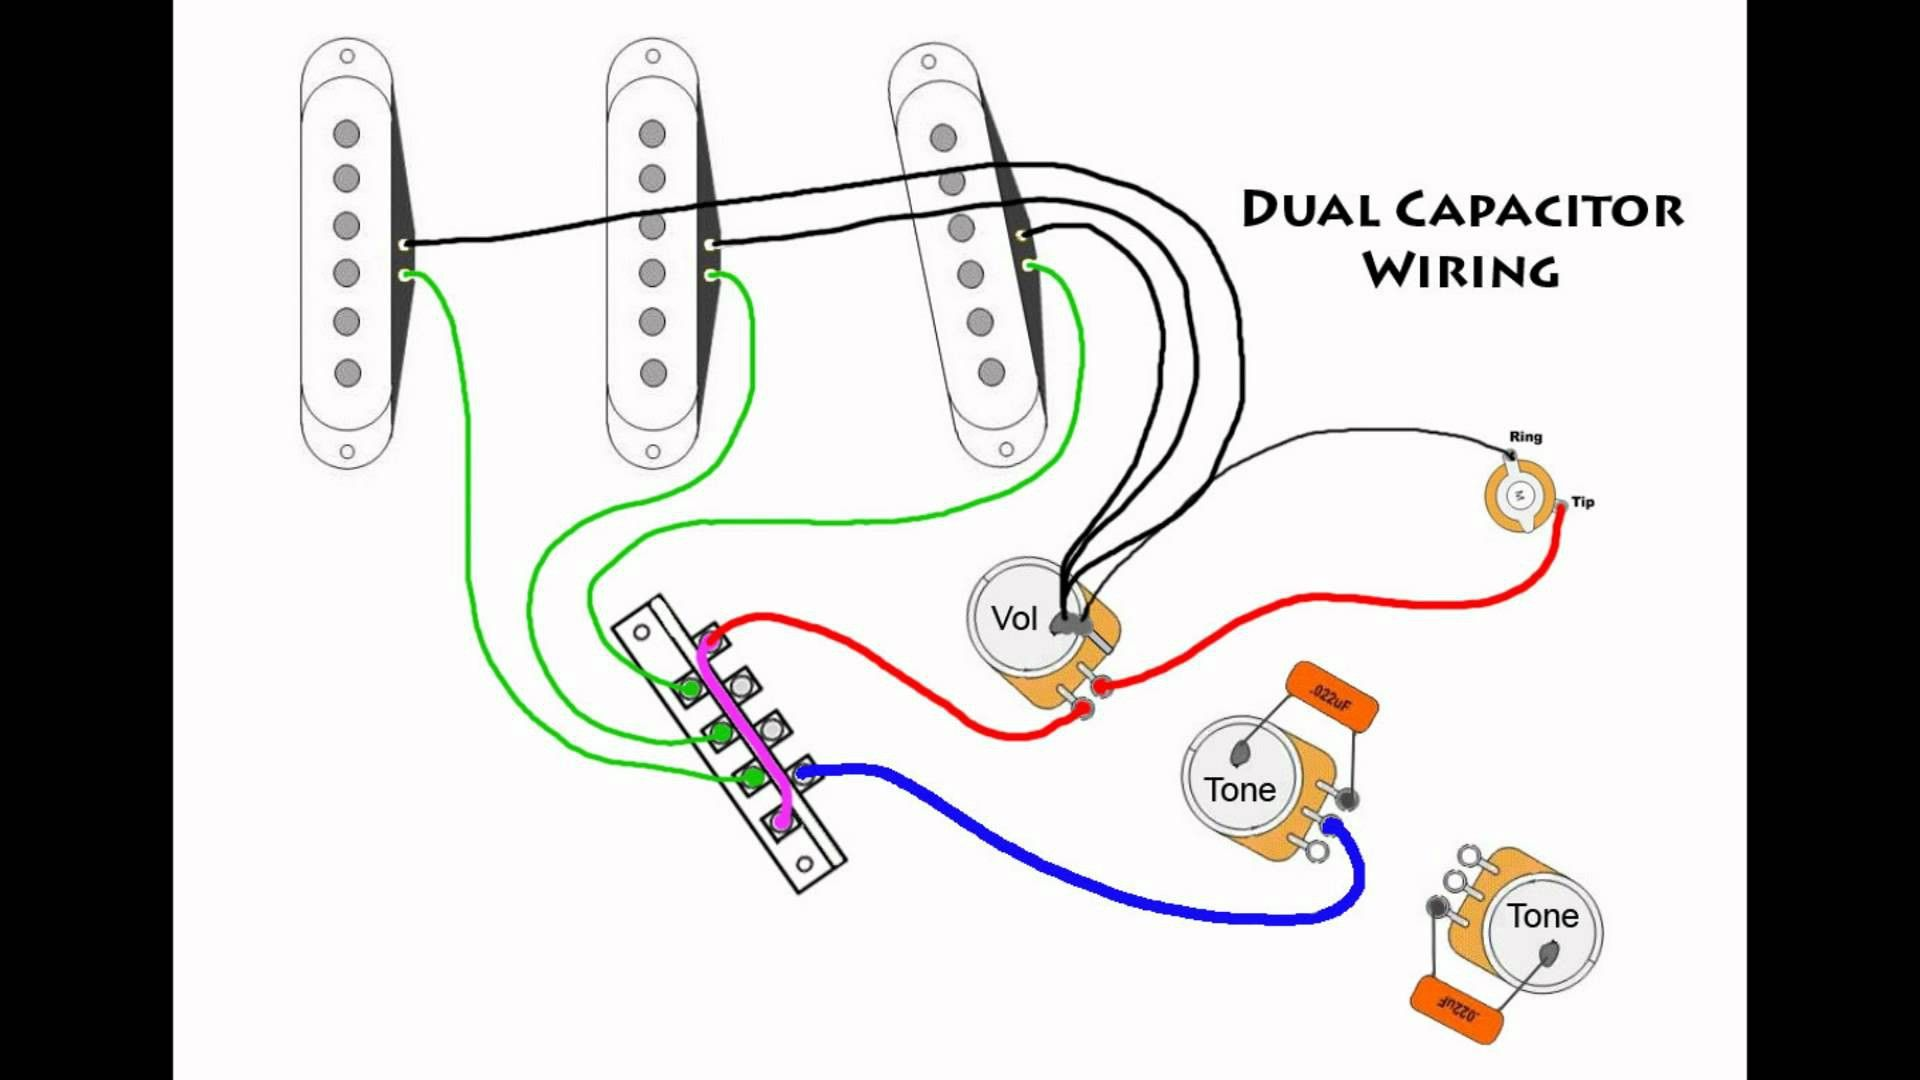 [SCHEMATICS_4FD]  Wiring Diagram Best 10 Of Stratocaster electric guitar telecaster humbucker wiring  diagram - girl.123vielgeld.de | Fender Guitar Wiring Schematics |  | wiring diagram